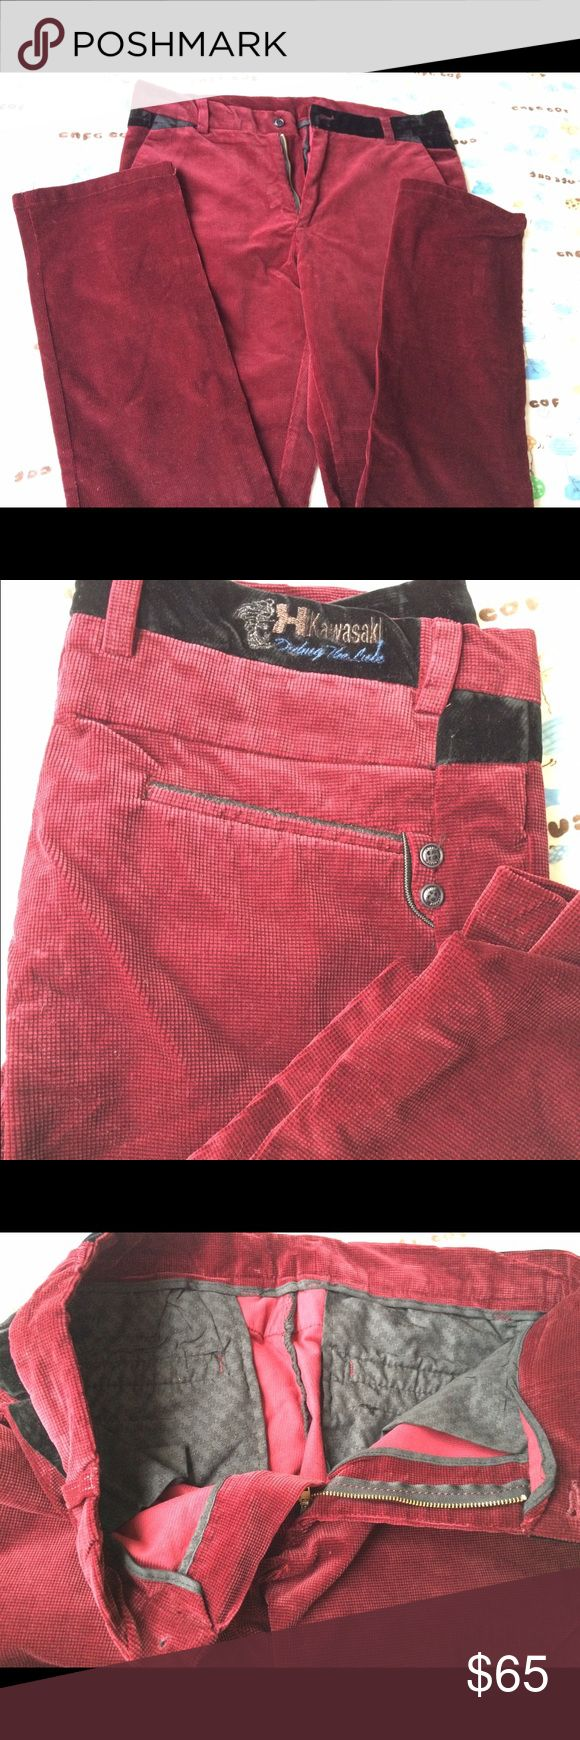 Brand new men's trousers New size around 175/92A, the true color close to dark red,  a little bit darker than in the photos. Velvet type of fabric. Pants